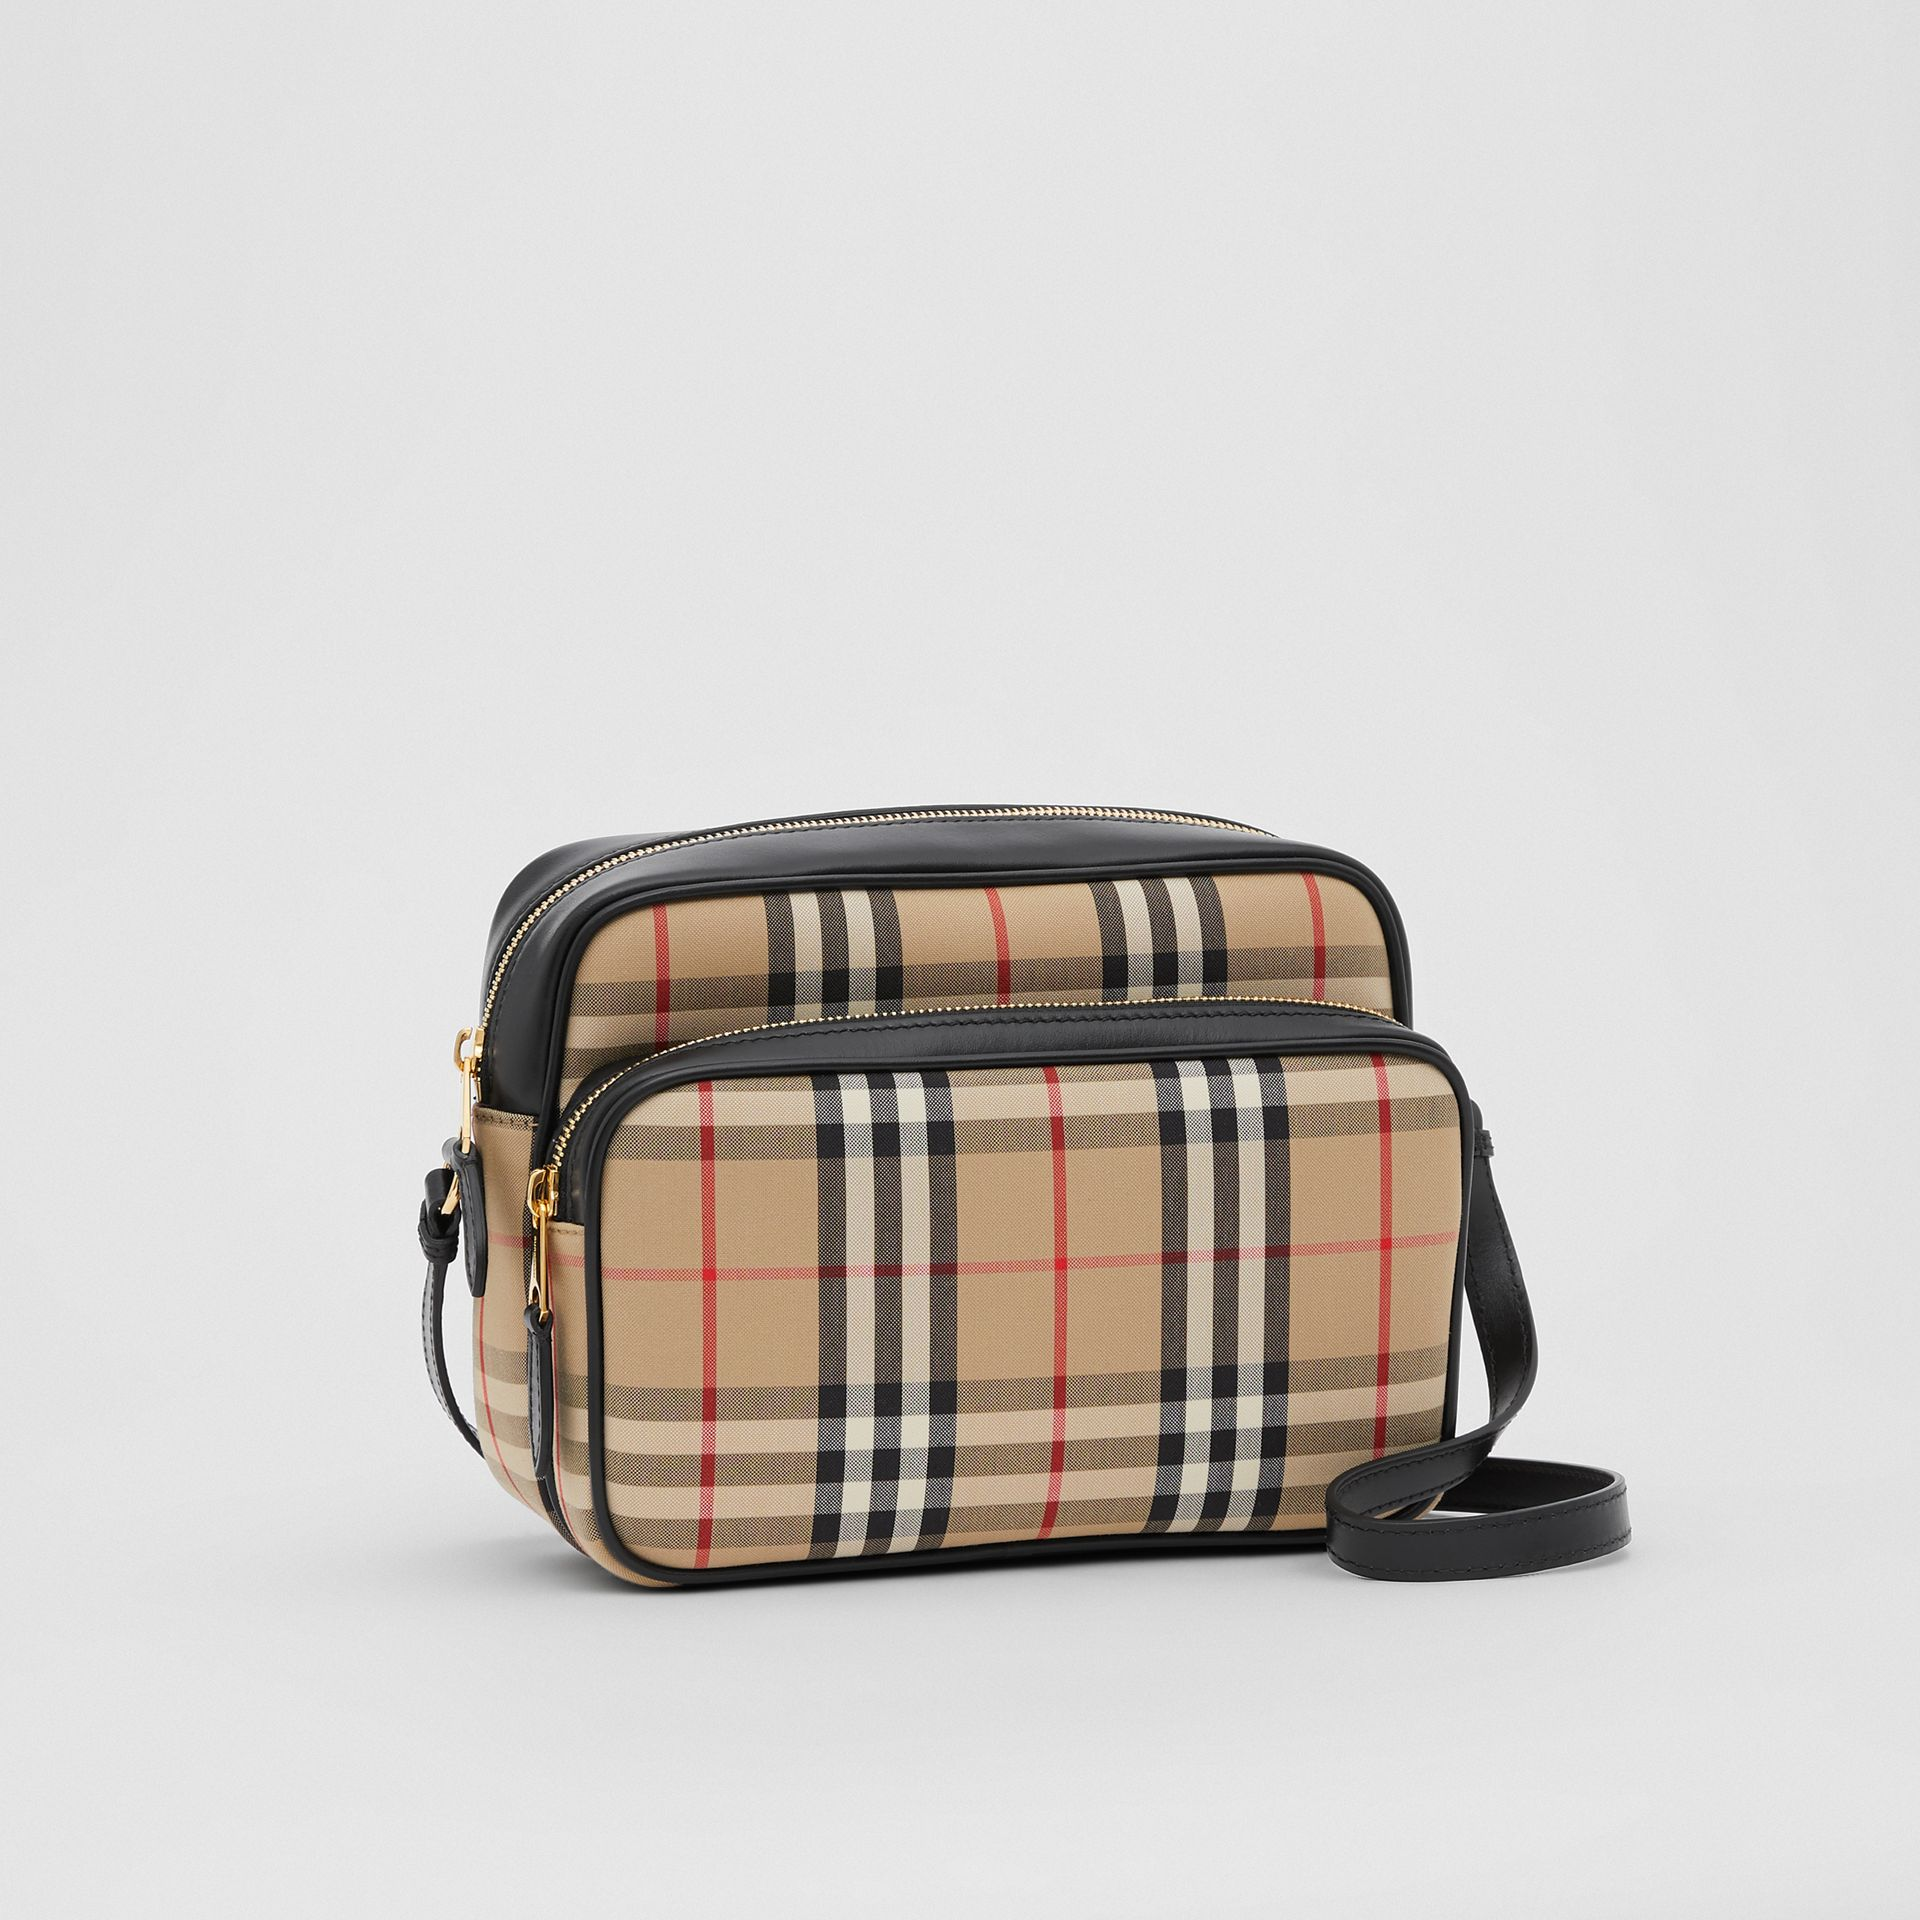 Medium Vintage Check and Leather Camera Bag in Archive Beige - Women | Burberry Canada - gallery image 4